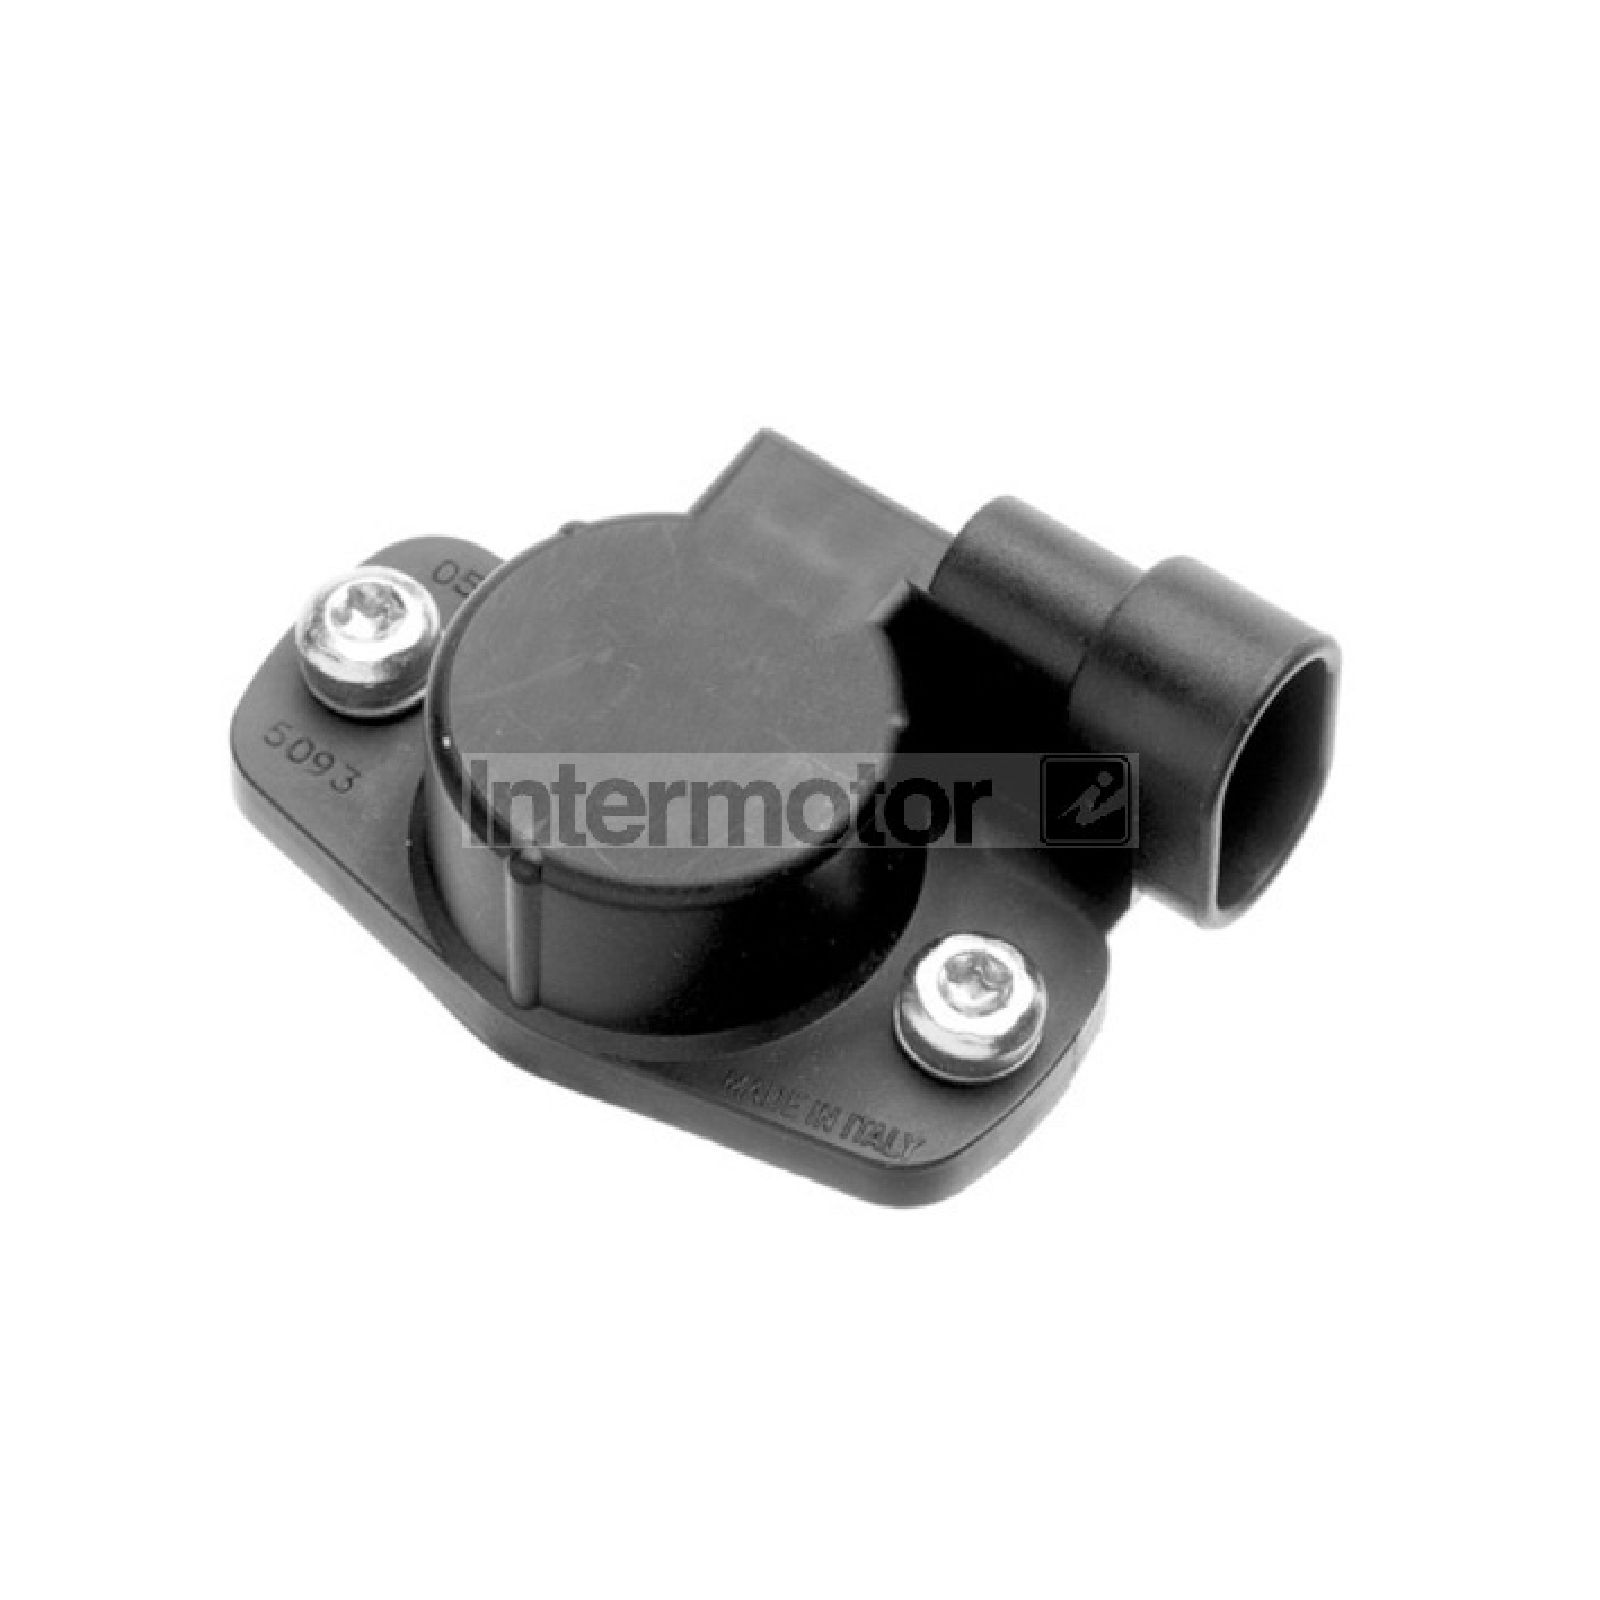 Intermotor Throttle Position Sensor TPS Accelerator Pedal